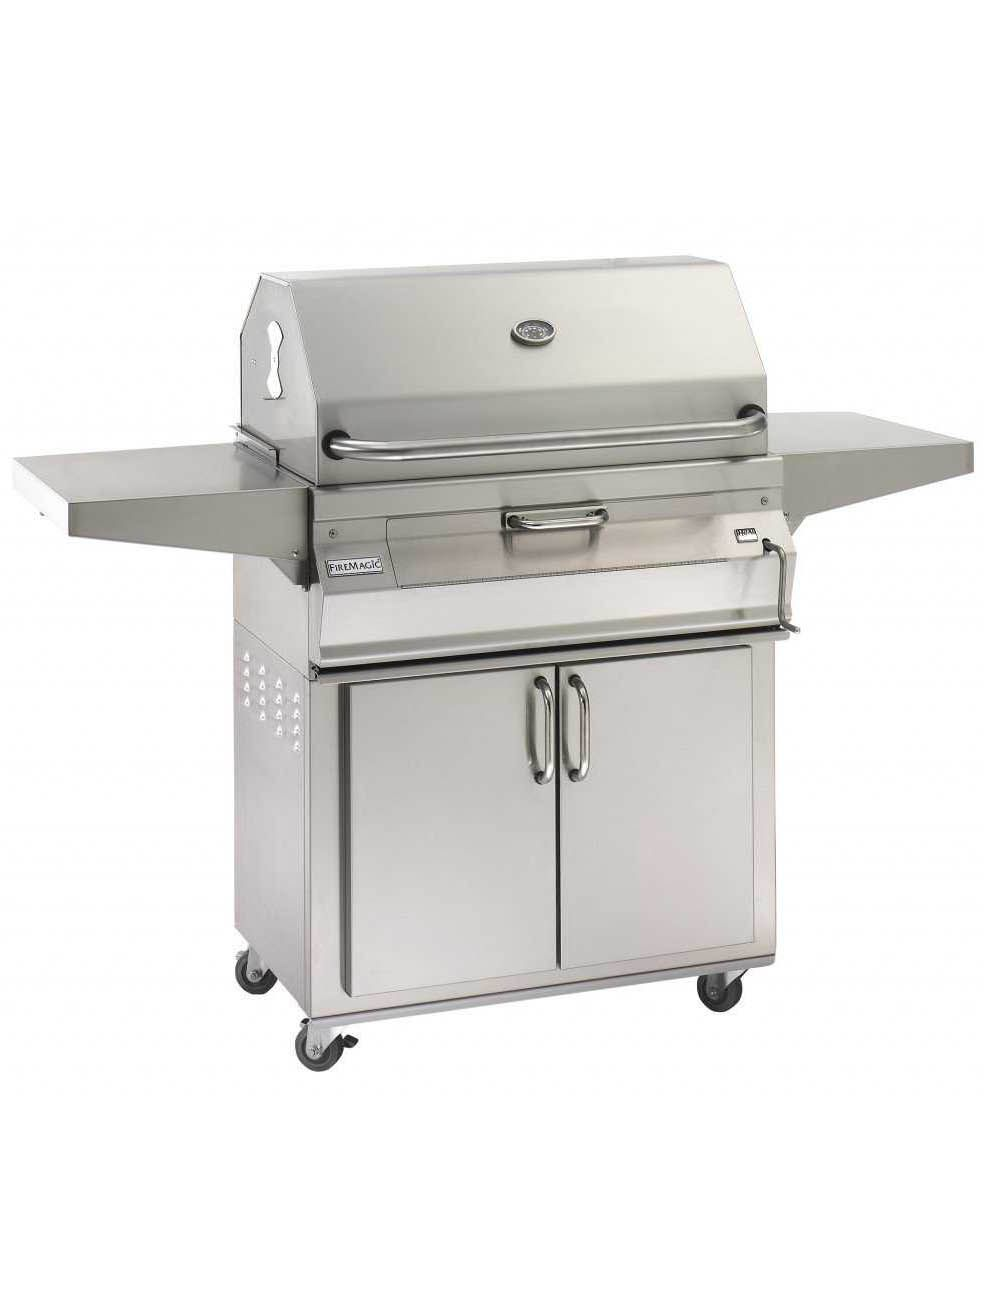 Fire magic charcoal stainless steel 24 cart bbq grill